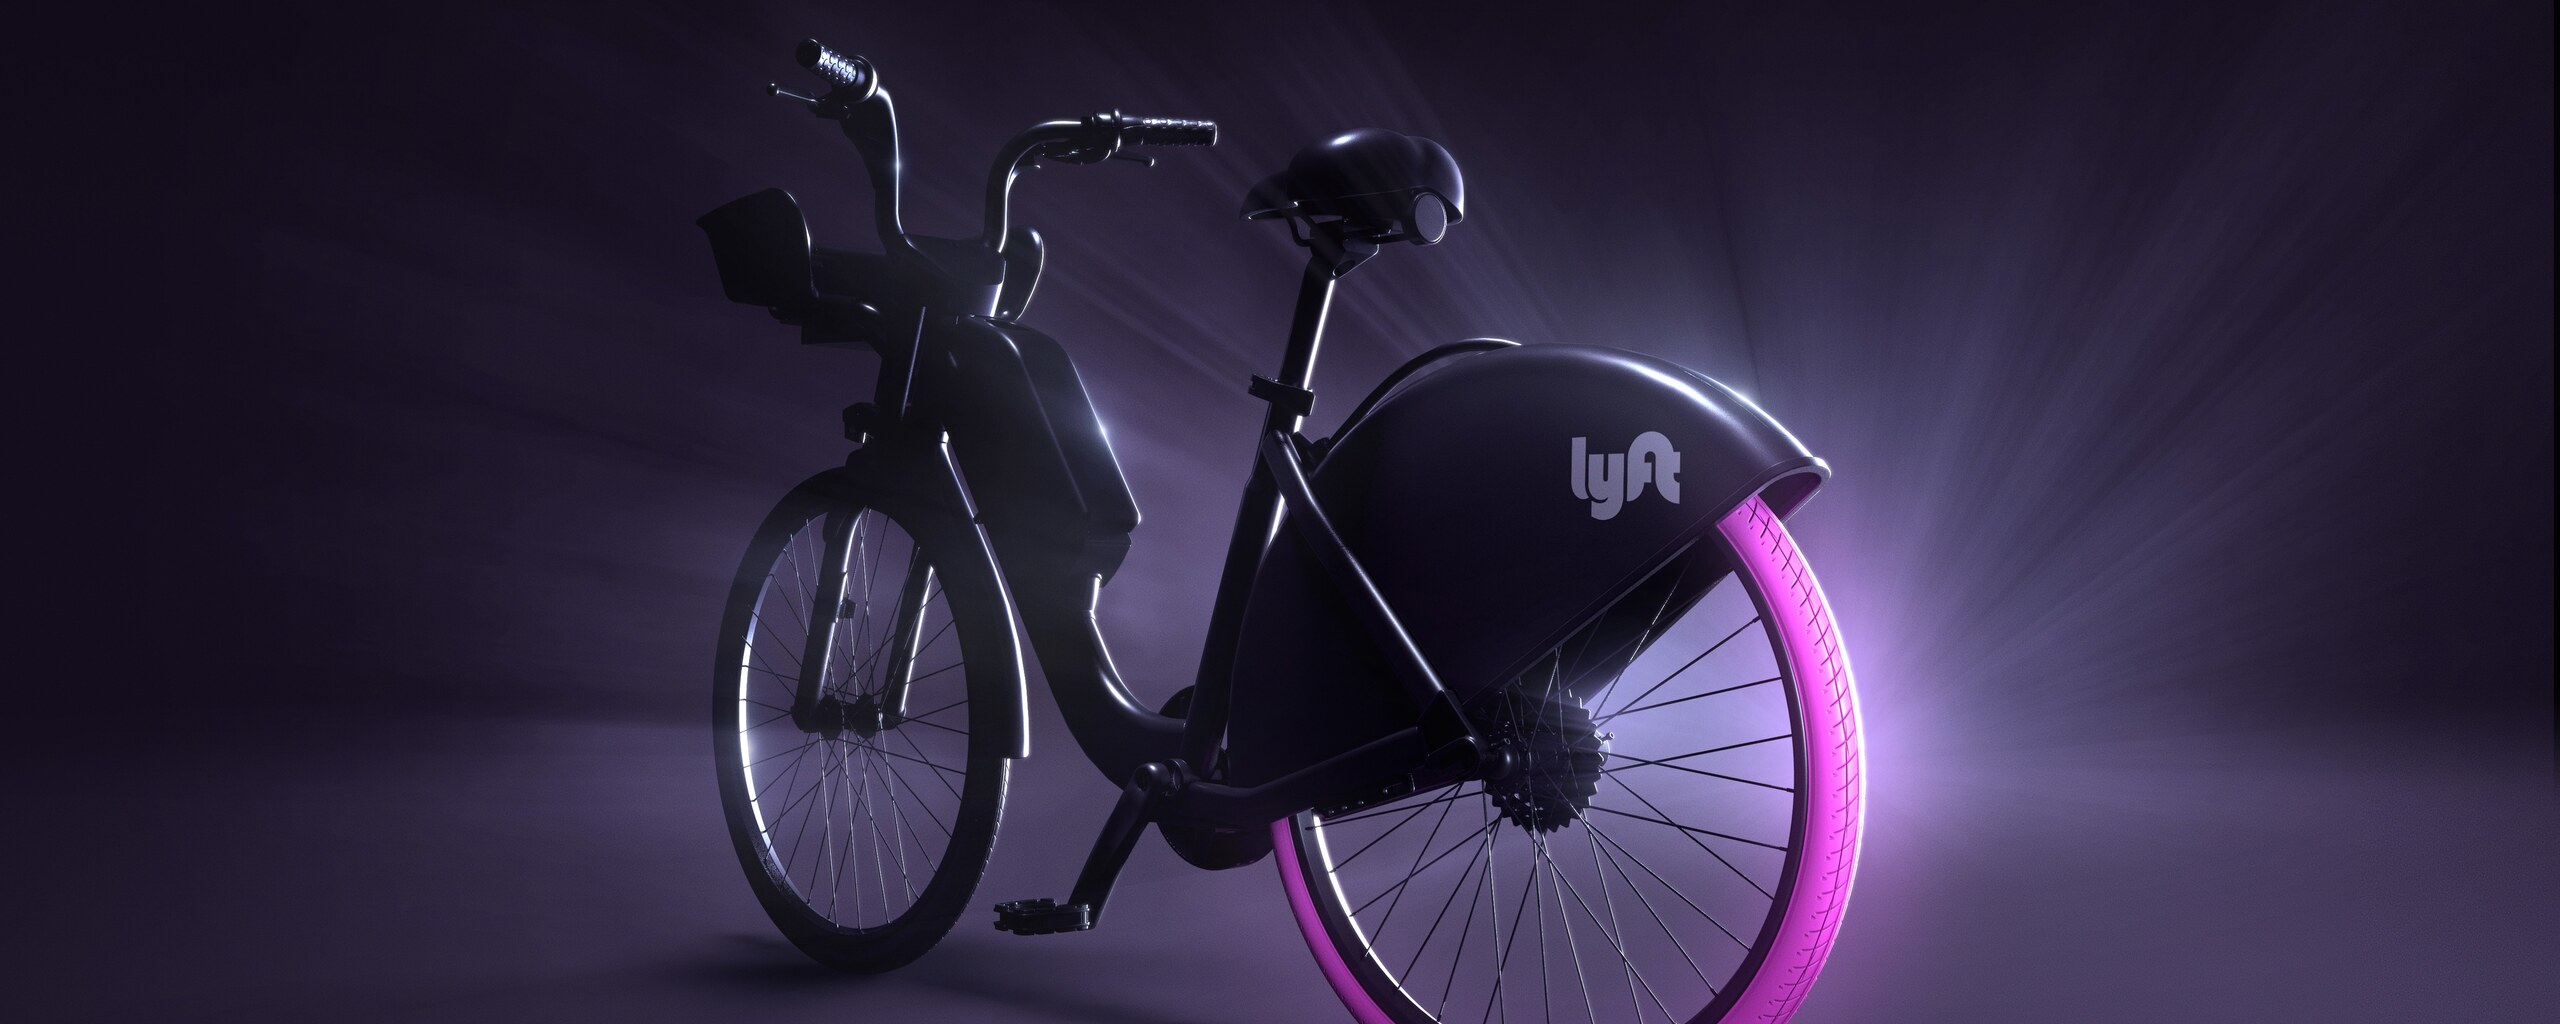 cycle-art-7w.jpg